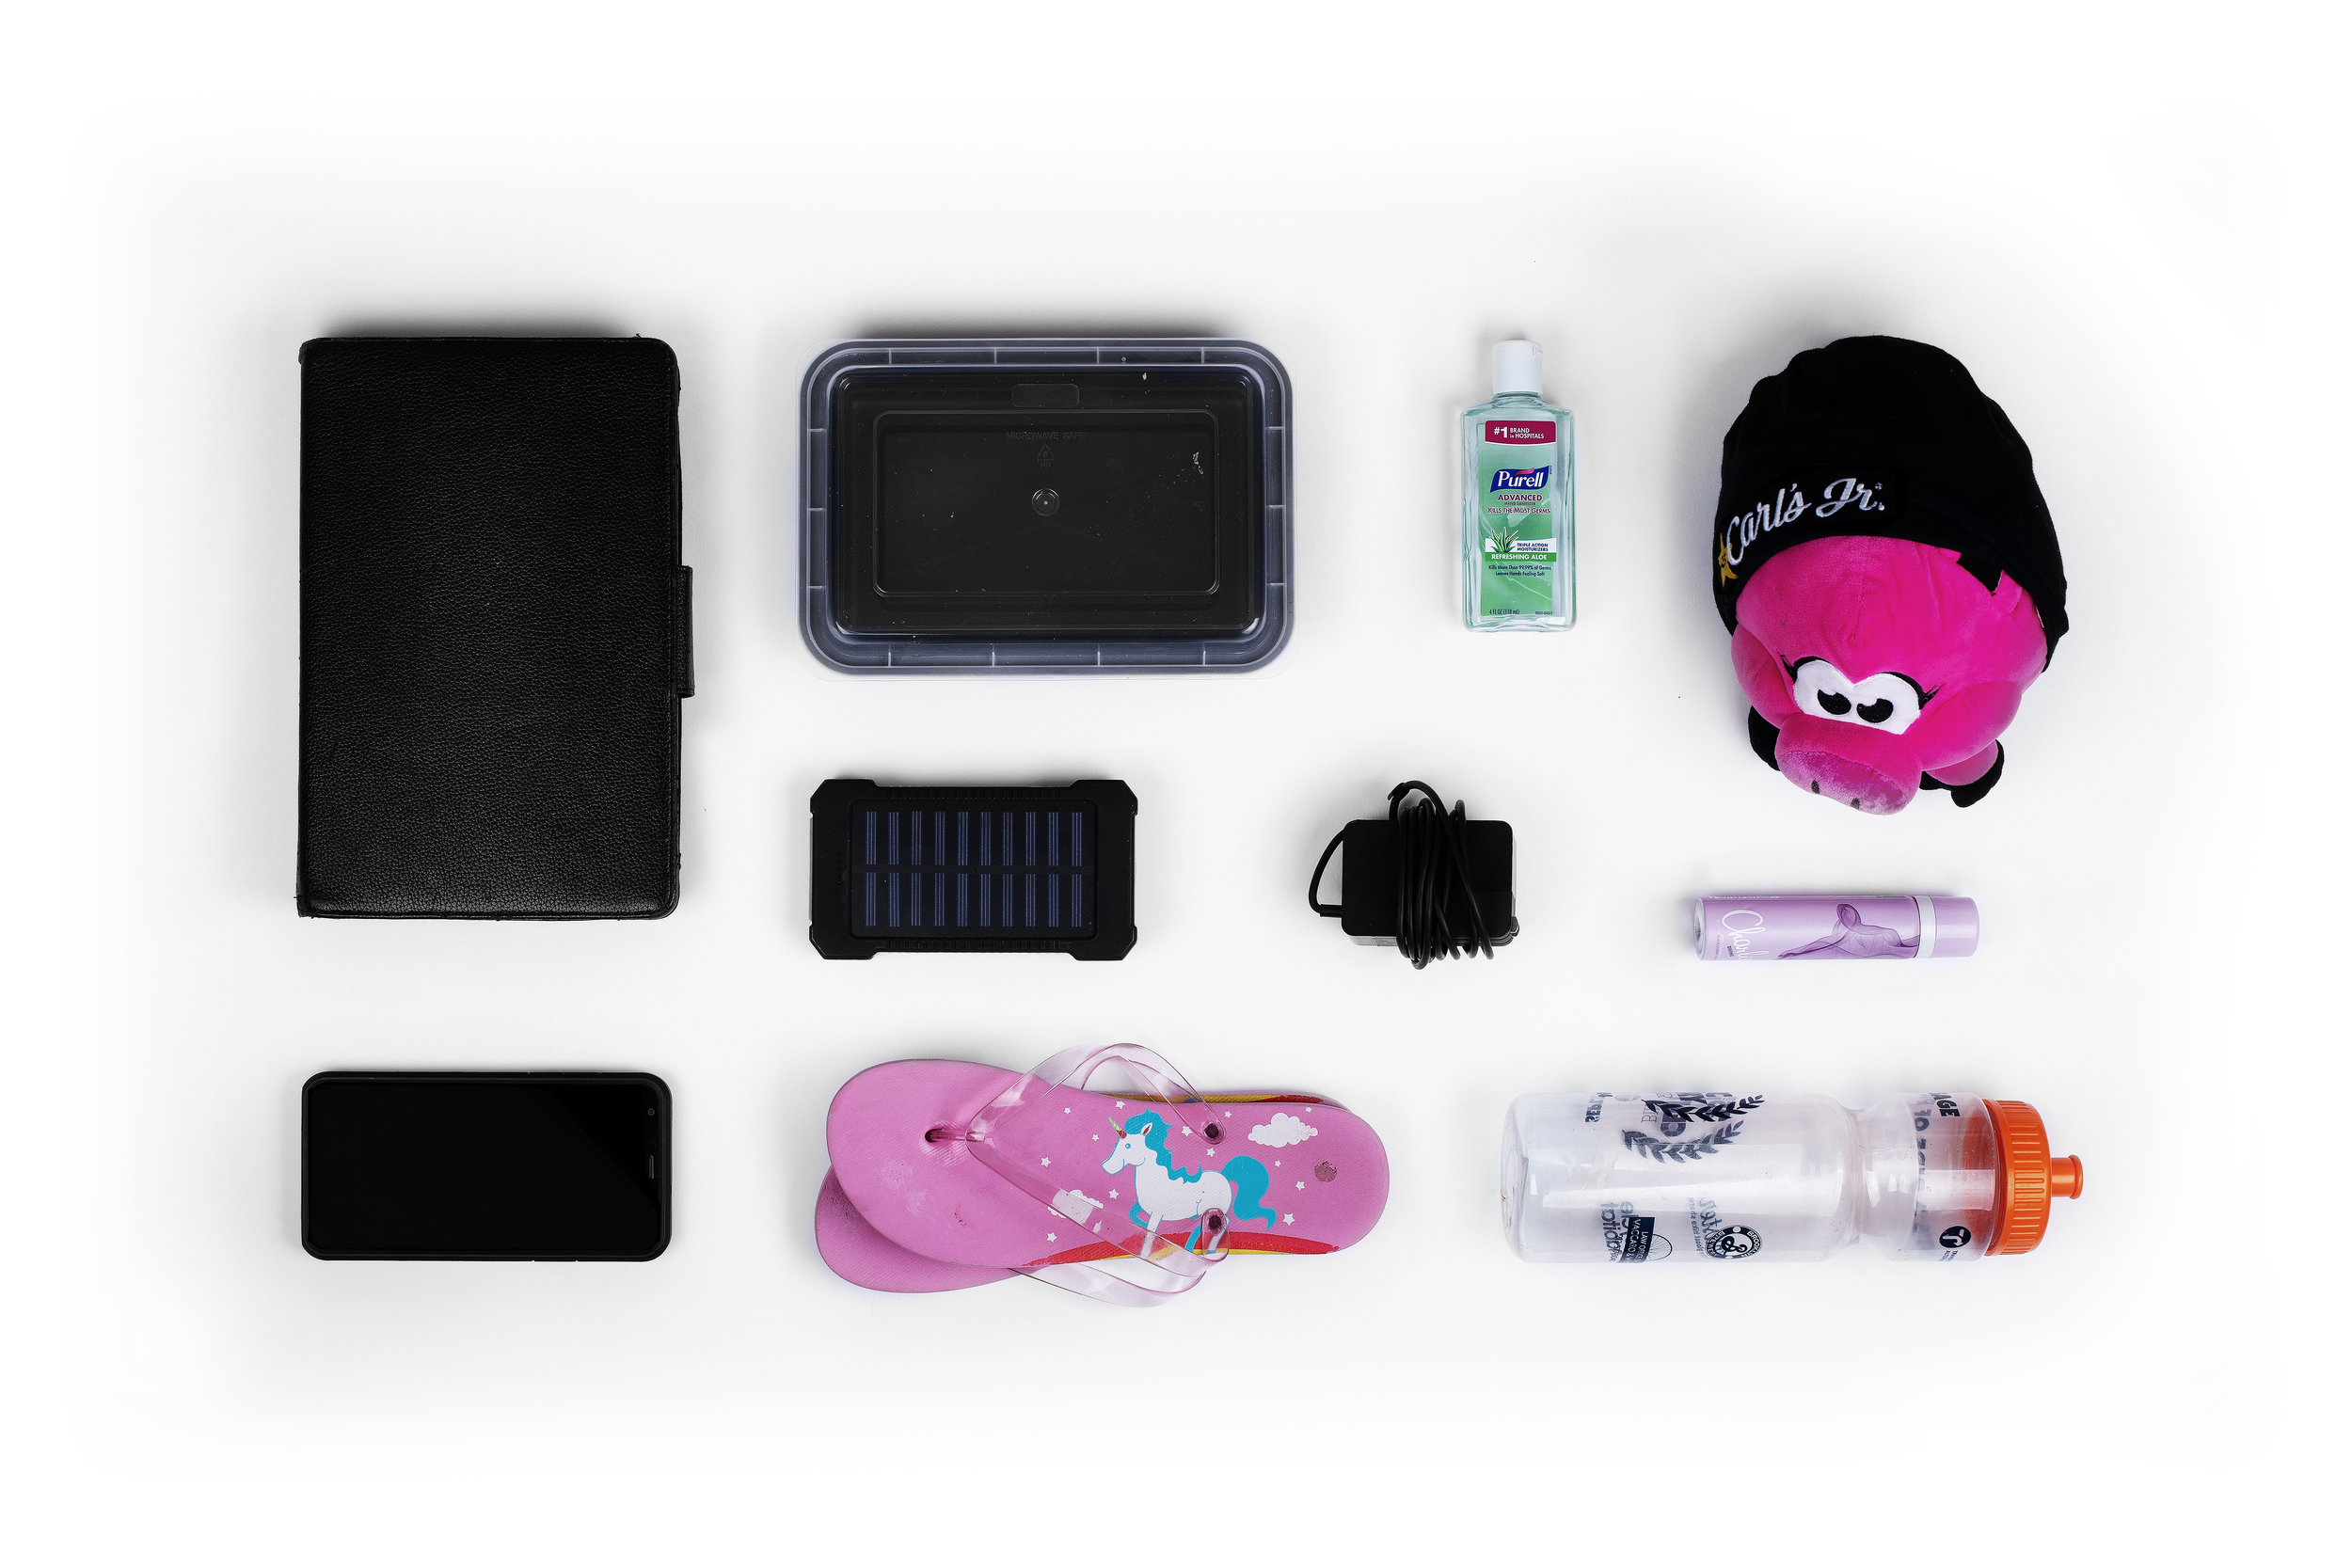 Tablet – Plastic Container – Purell – Plush Toy – Solar Charger – Charger – Perfume – Cell Phone – Flip Flops – Water Bottle